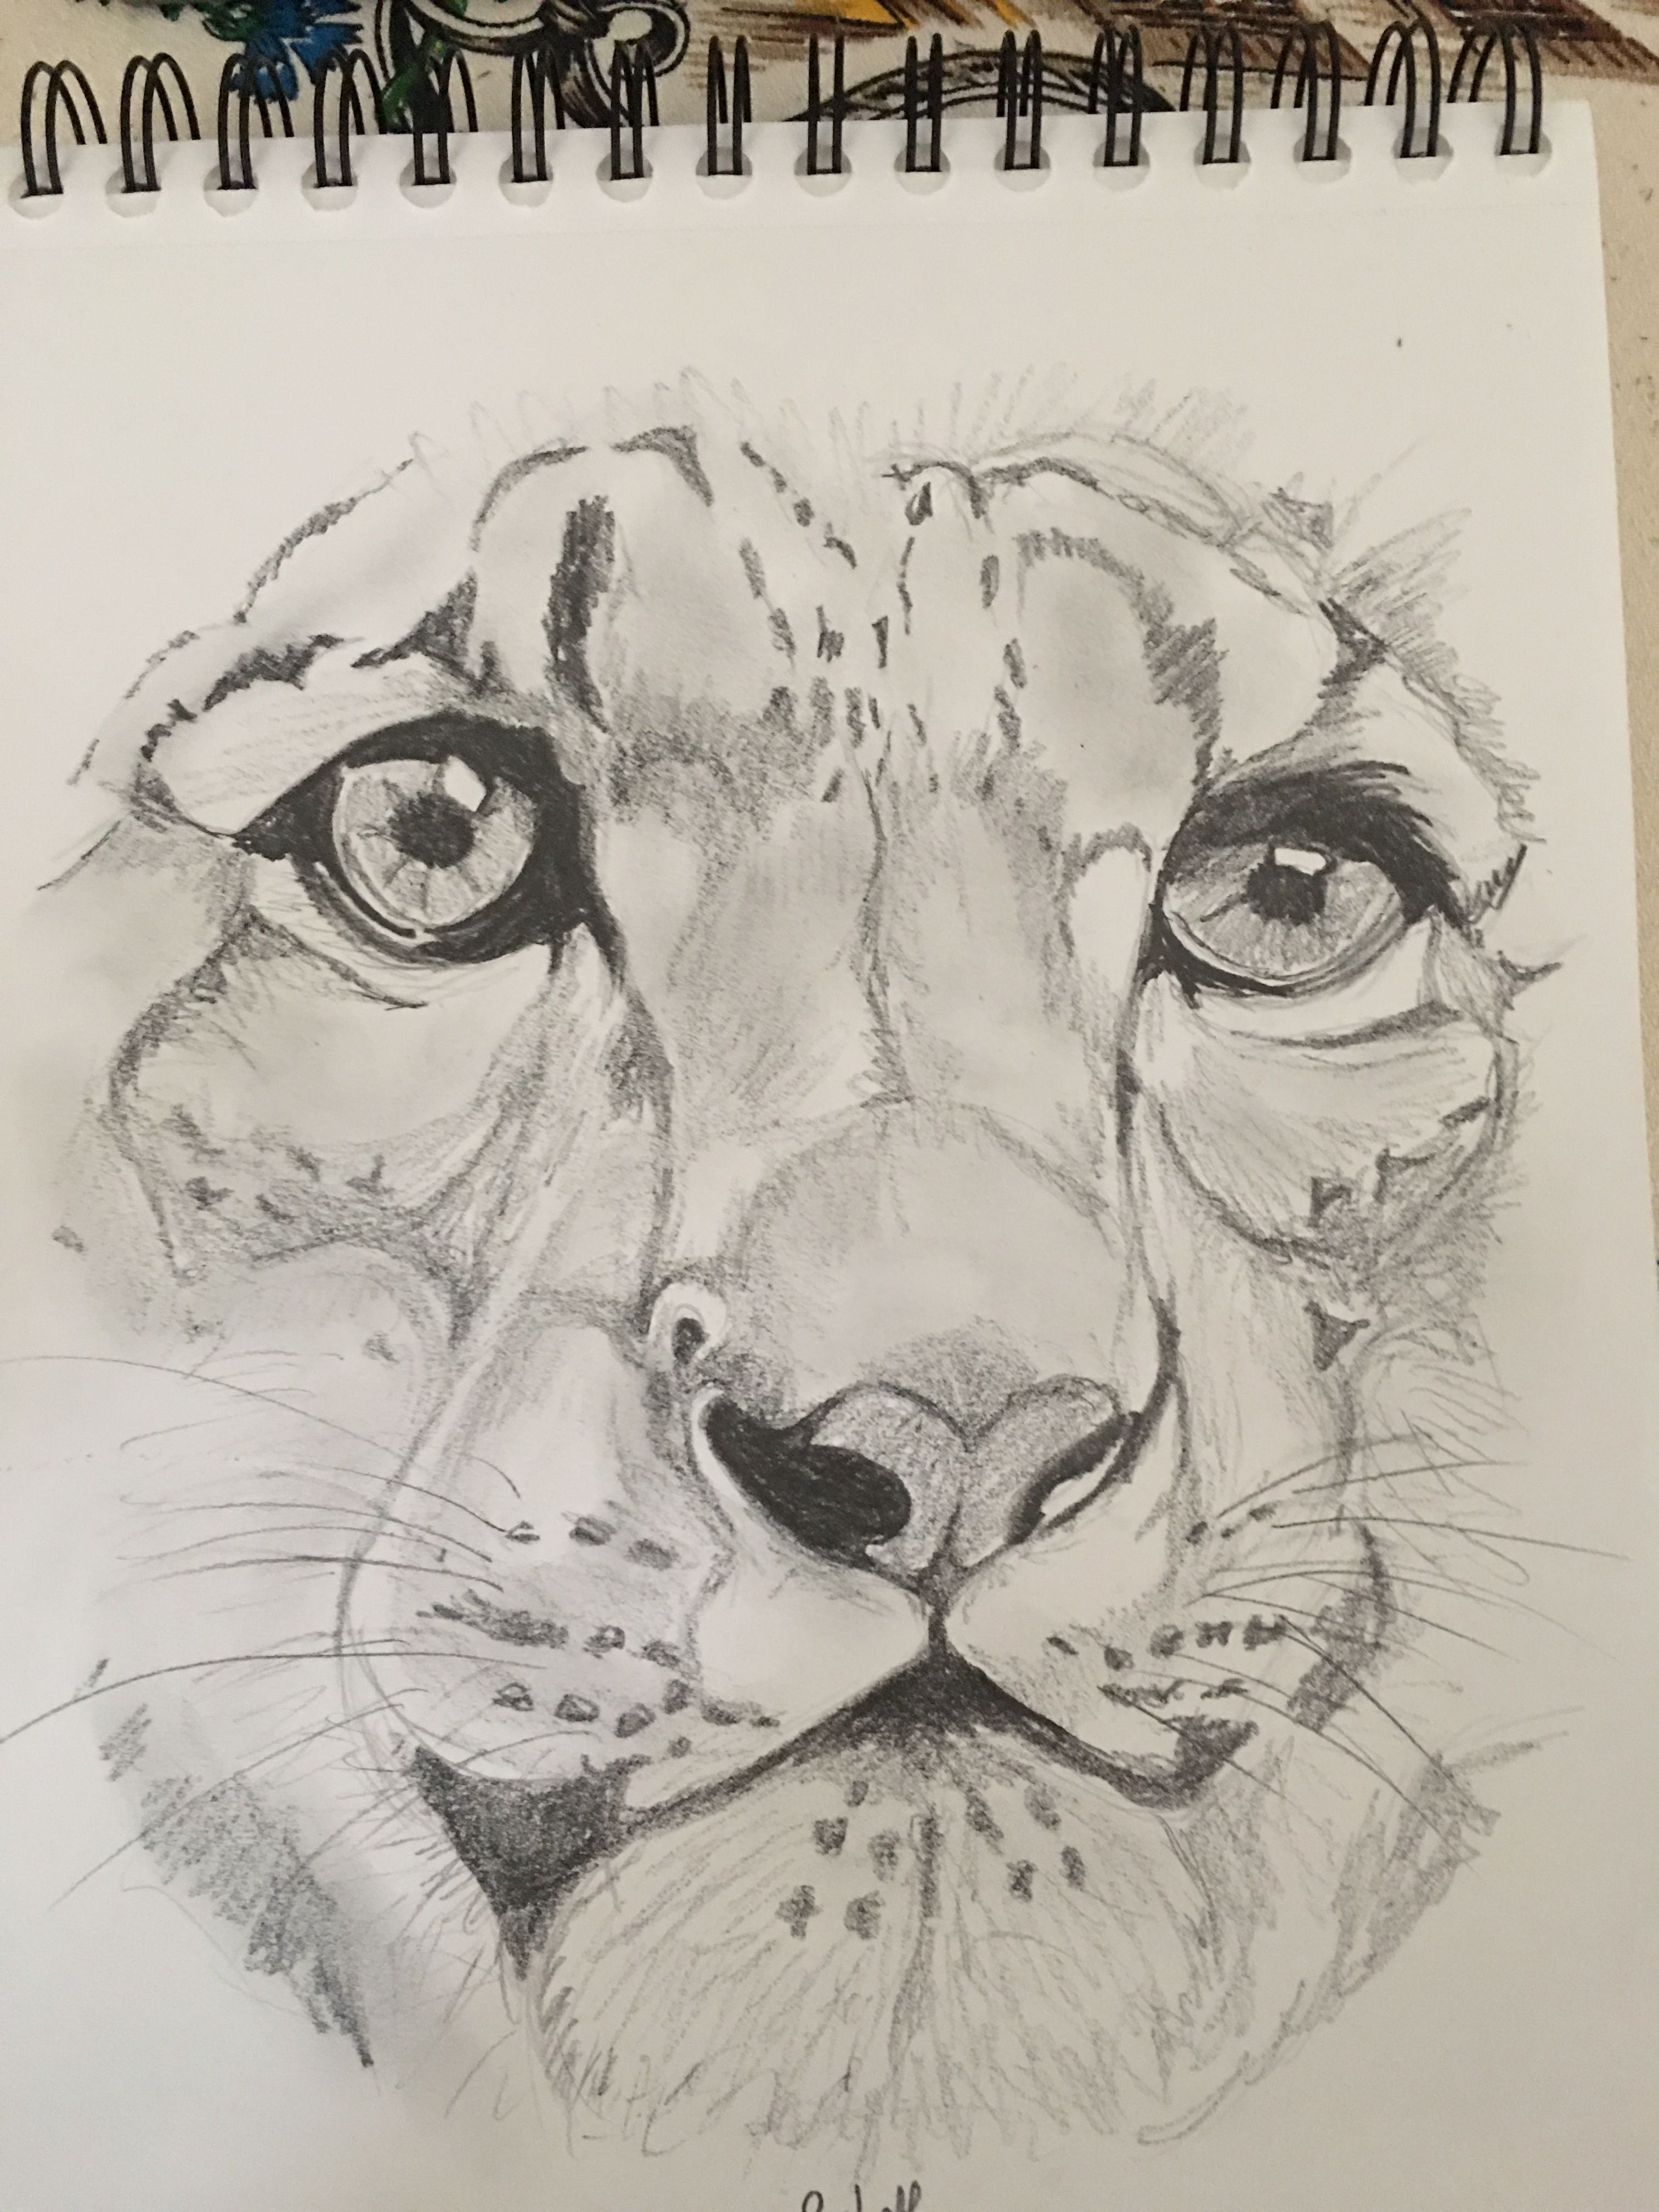 Drawing Ideas For Kids Age 12 : drawing, ideas, Chantal, Nipko, Animals~, Doodle, Drawings, Sketches, Creative,, Animal, Drawings,